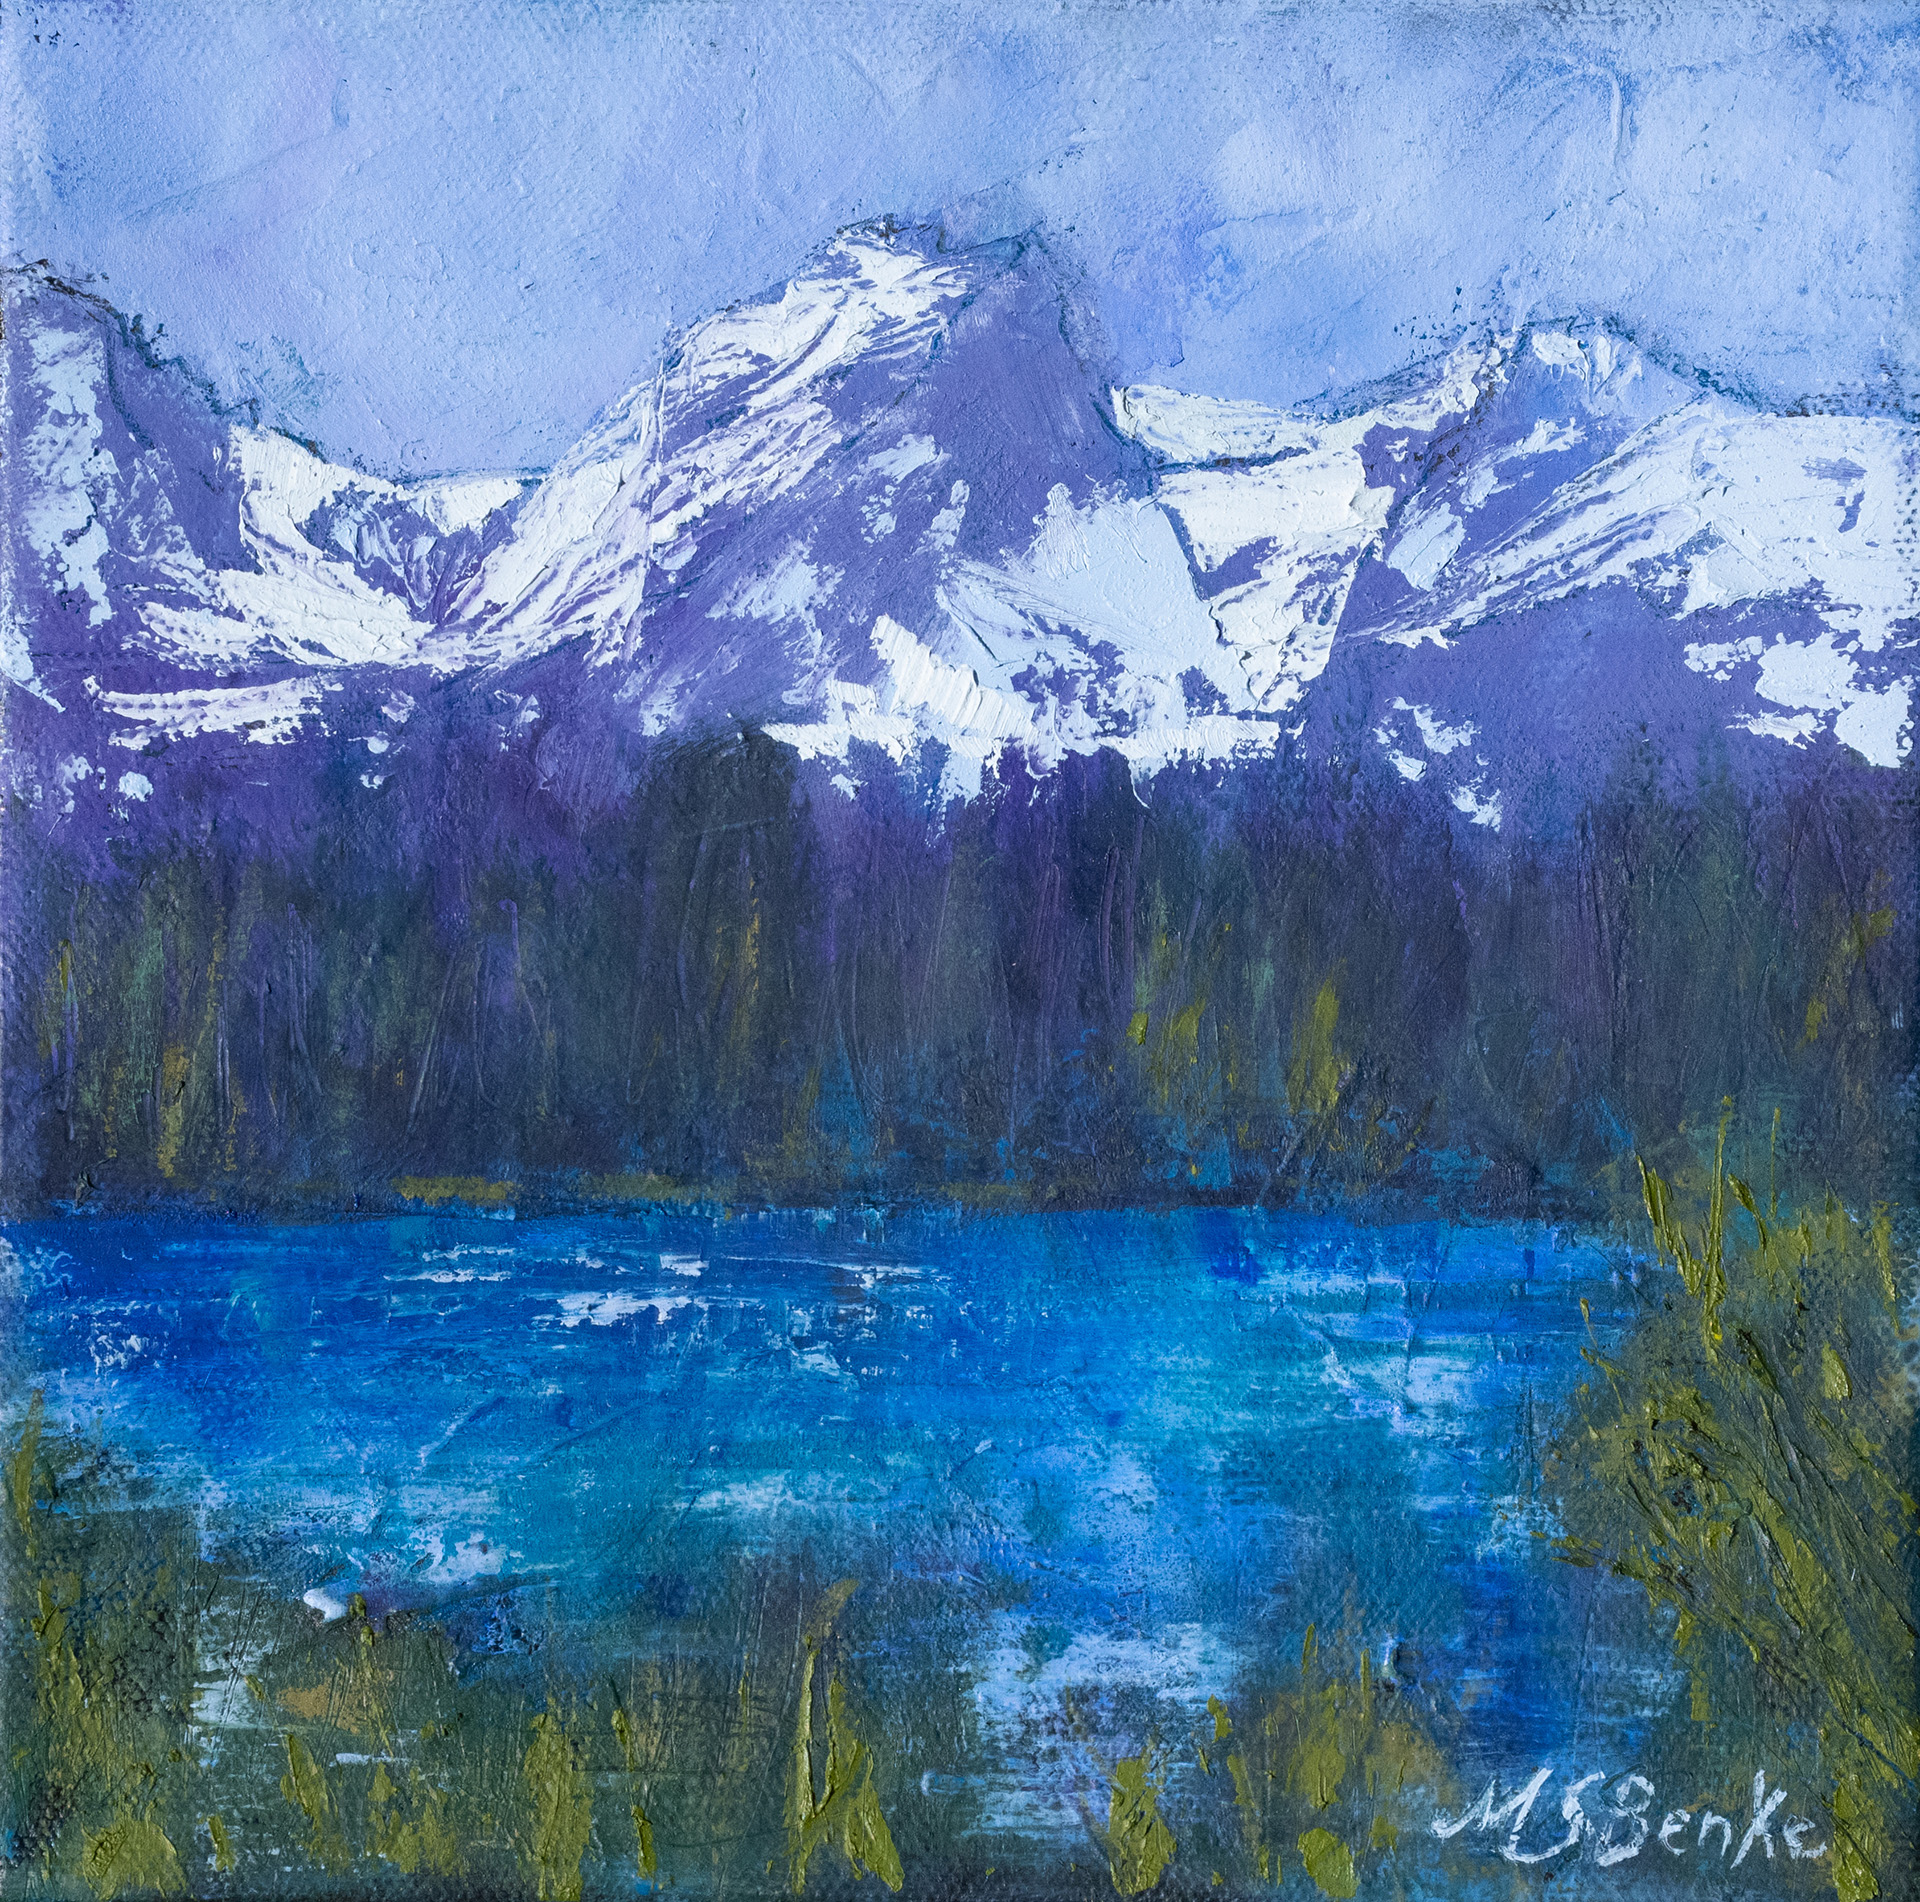 Snow-covered Hallett Peak soars over a peaceful lake in this square oil painting created in harmonic blues. lavenders, and greens by Mary Benke